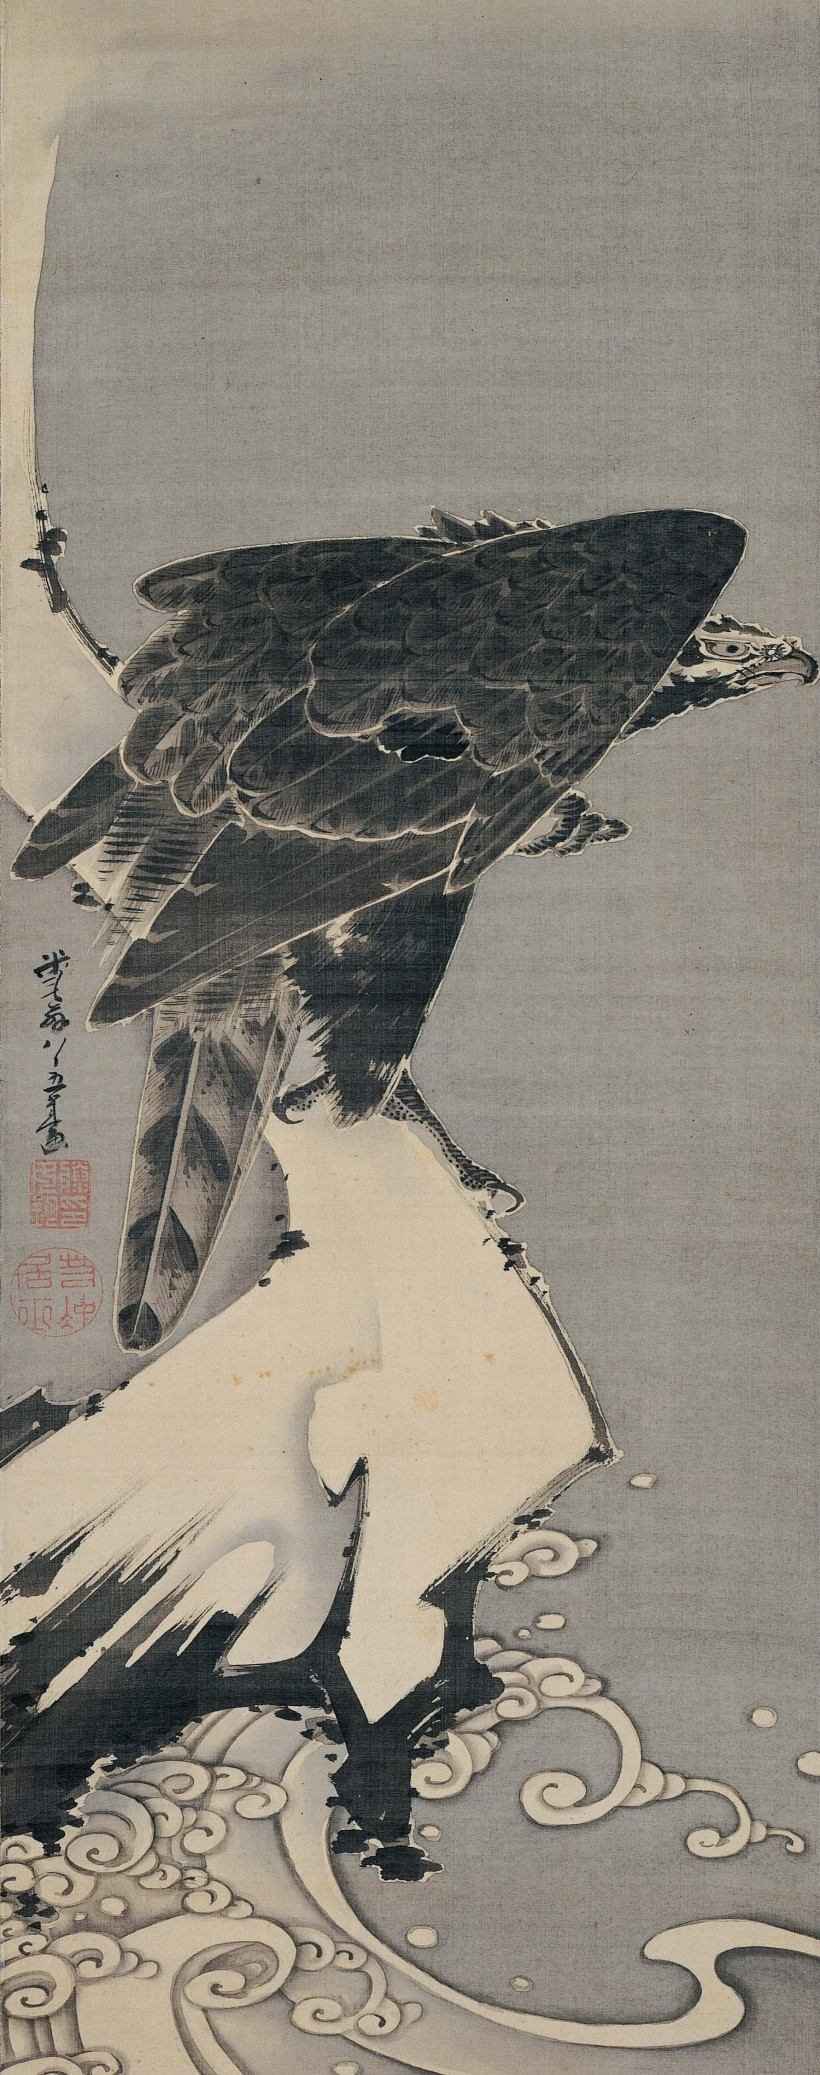 Image: Itō Jakuchū (Japan, 1716–1800), Eagle, 1800